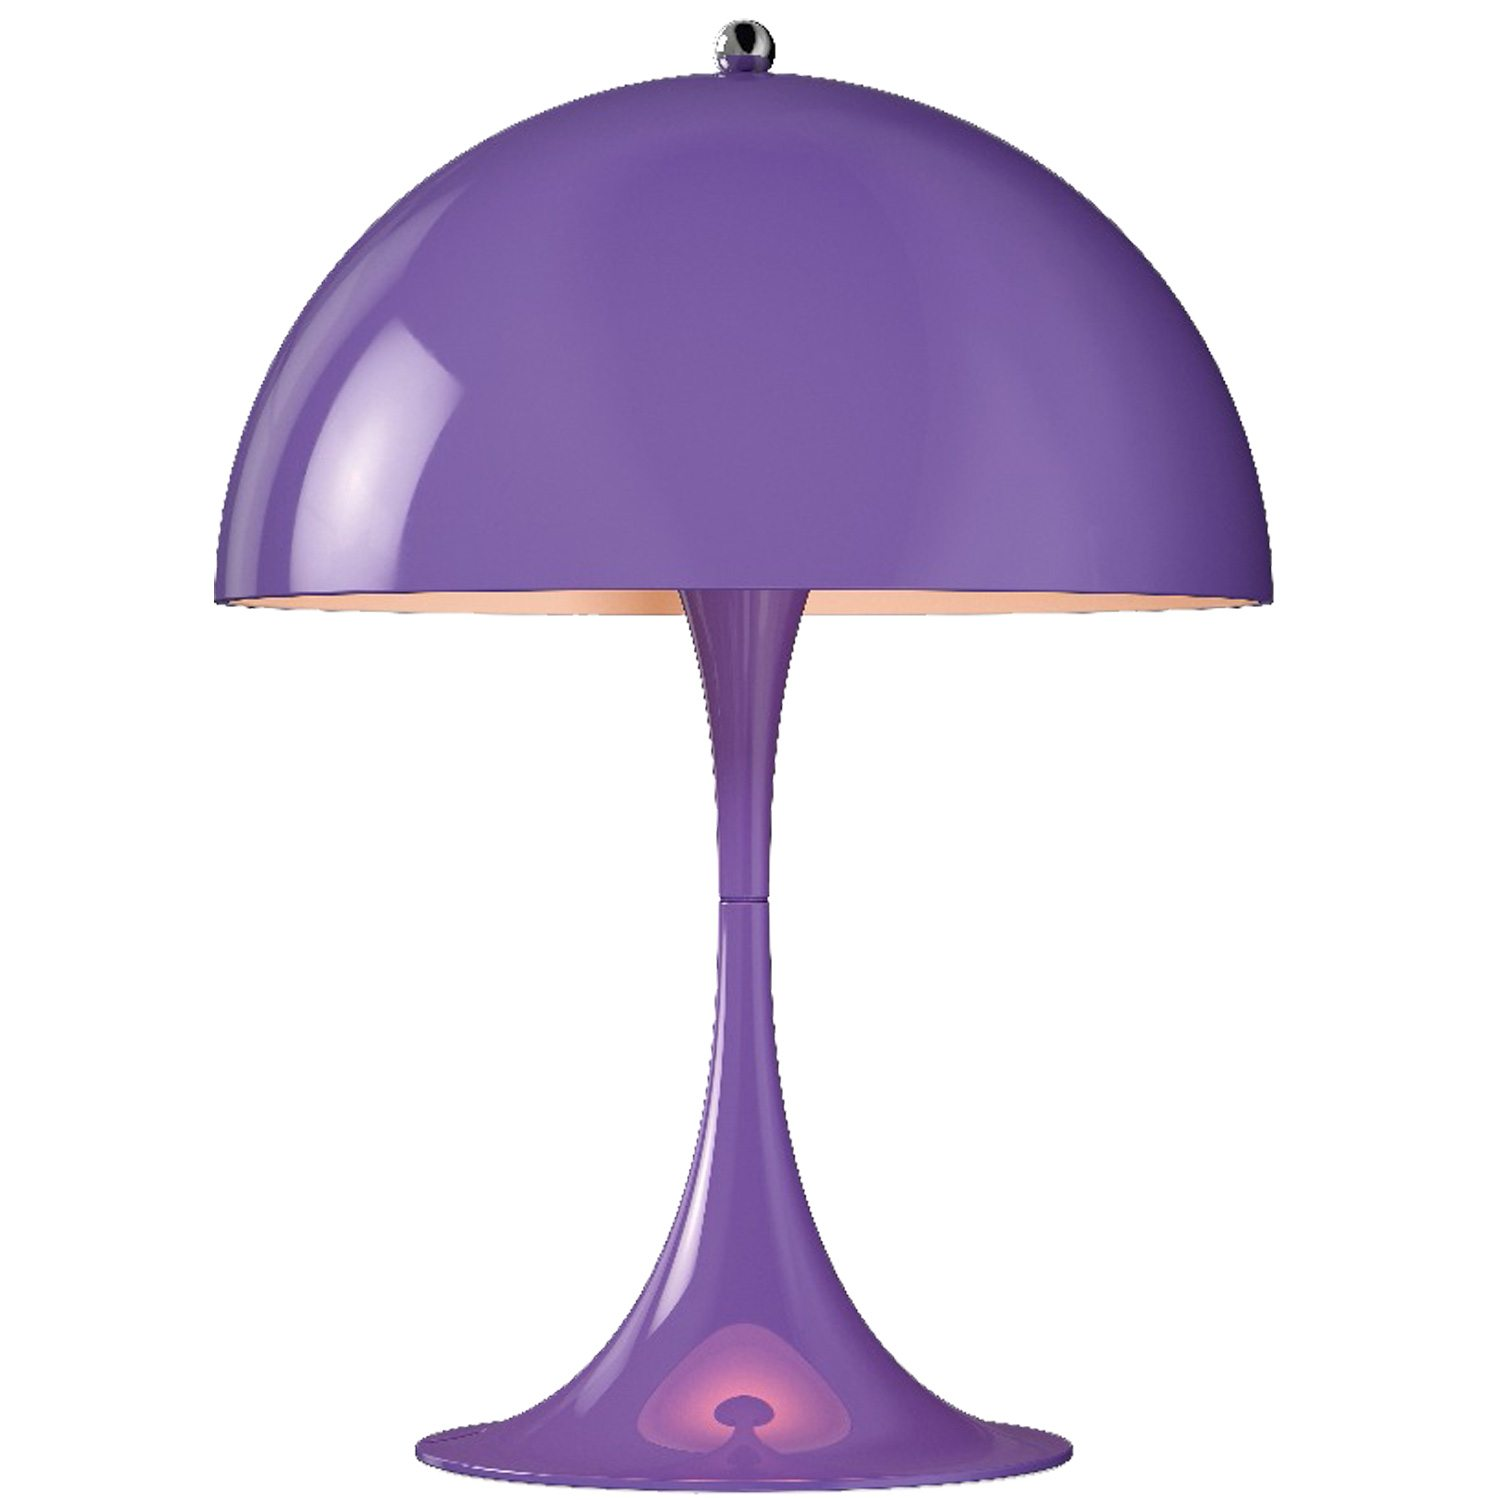 Panthella Mini bordslampa, lila